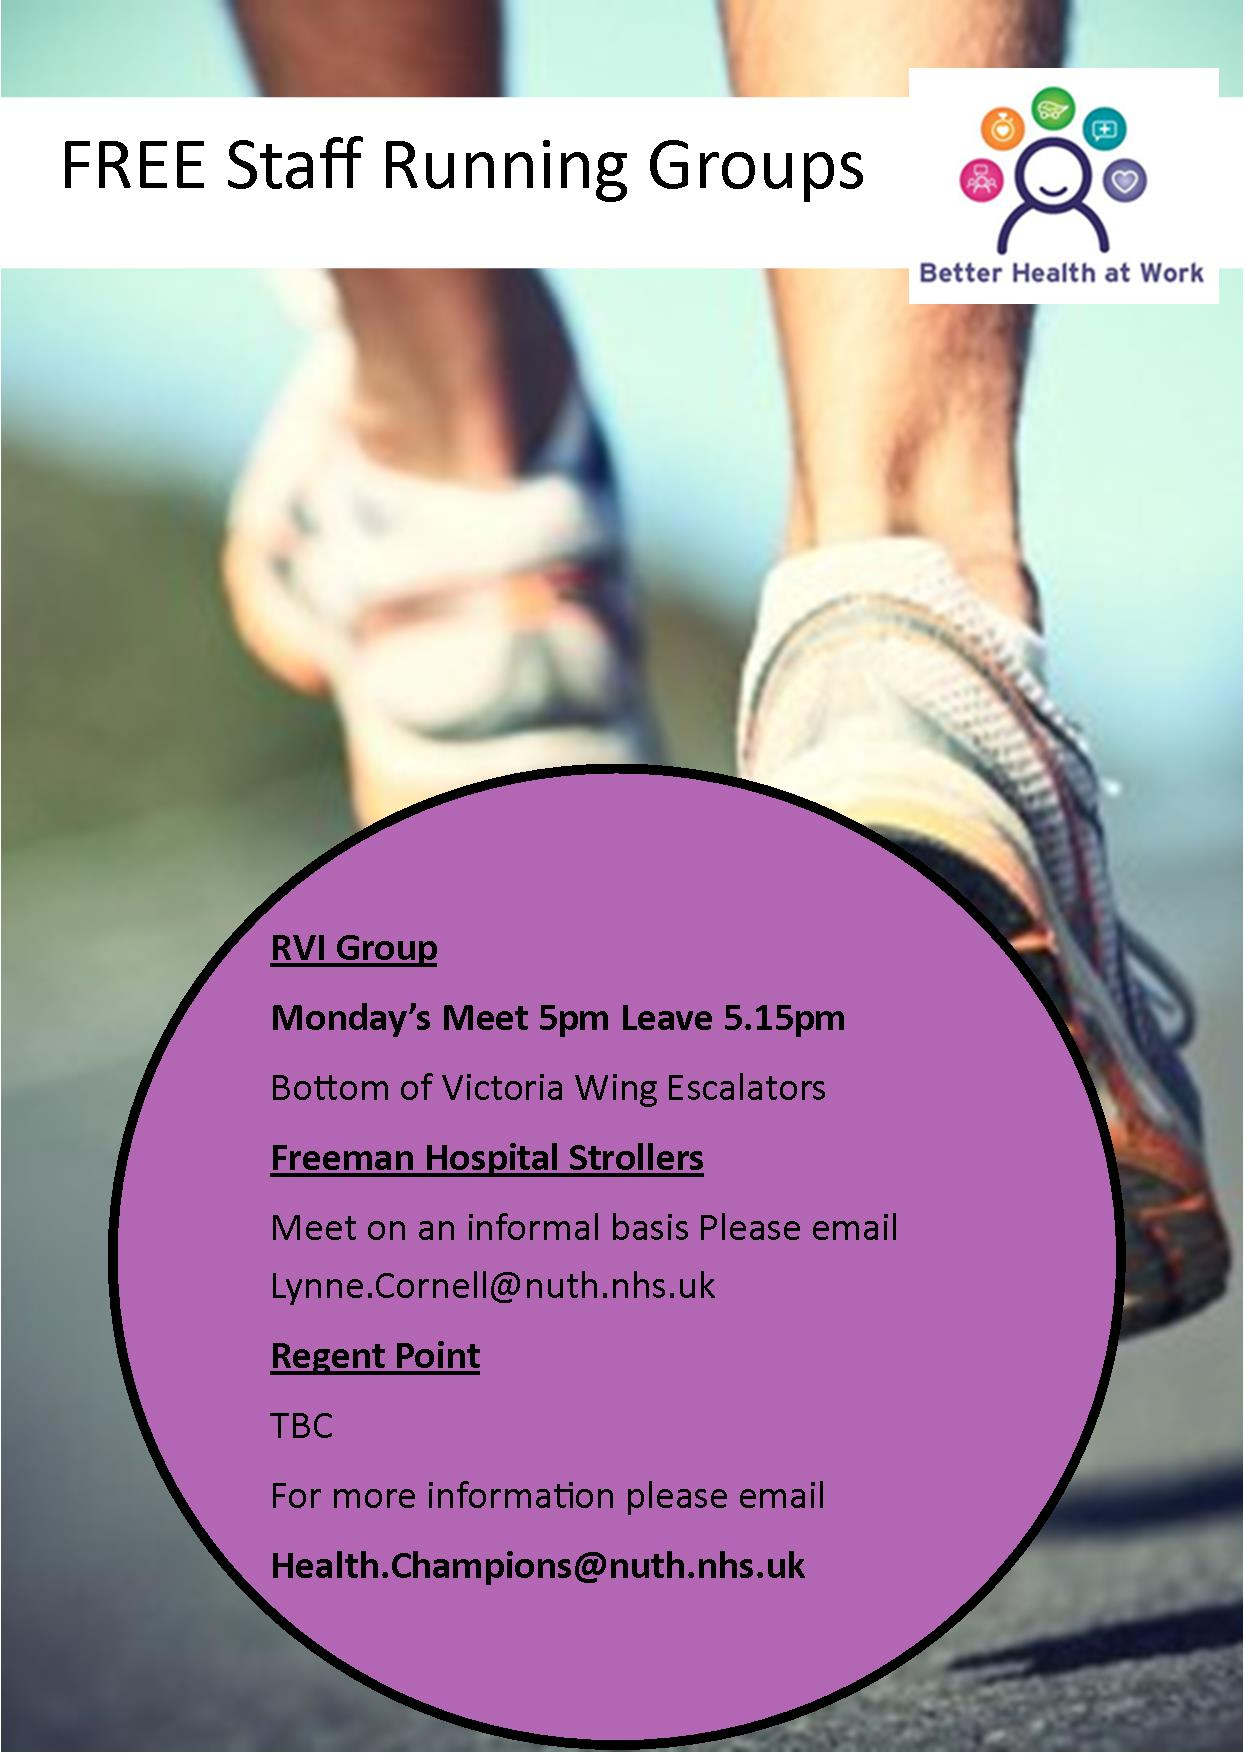 FREE Staff Running Groups RVI Group Monday's Meet 5pm Leave 5.15pm Bottom of Victoria Wing Escalators  Freeman Hospital Strollers Meet on an informal basis Please email Lynne.Cornell@nuth.nhs.uk  Regent Point TBC For more information please email Health.Champions@nuth.nhs.uk